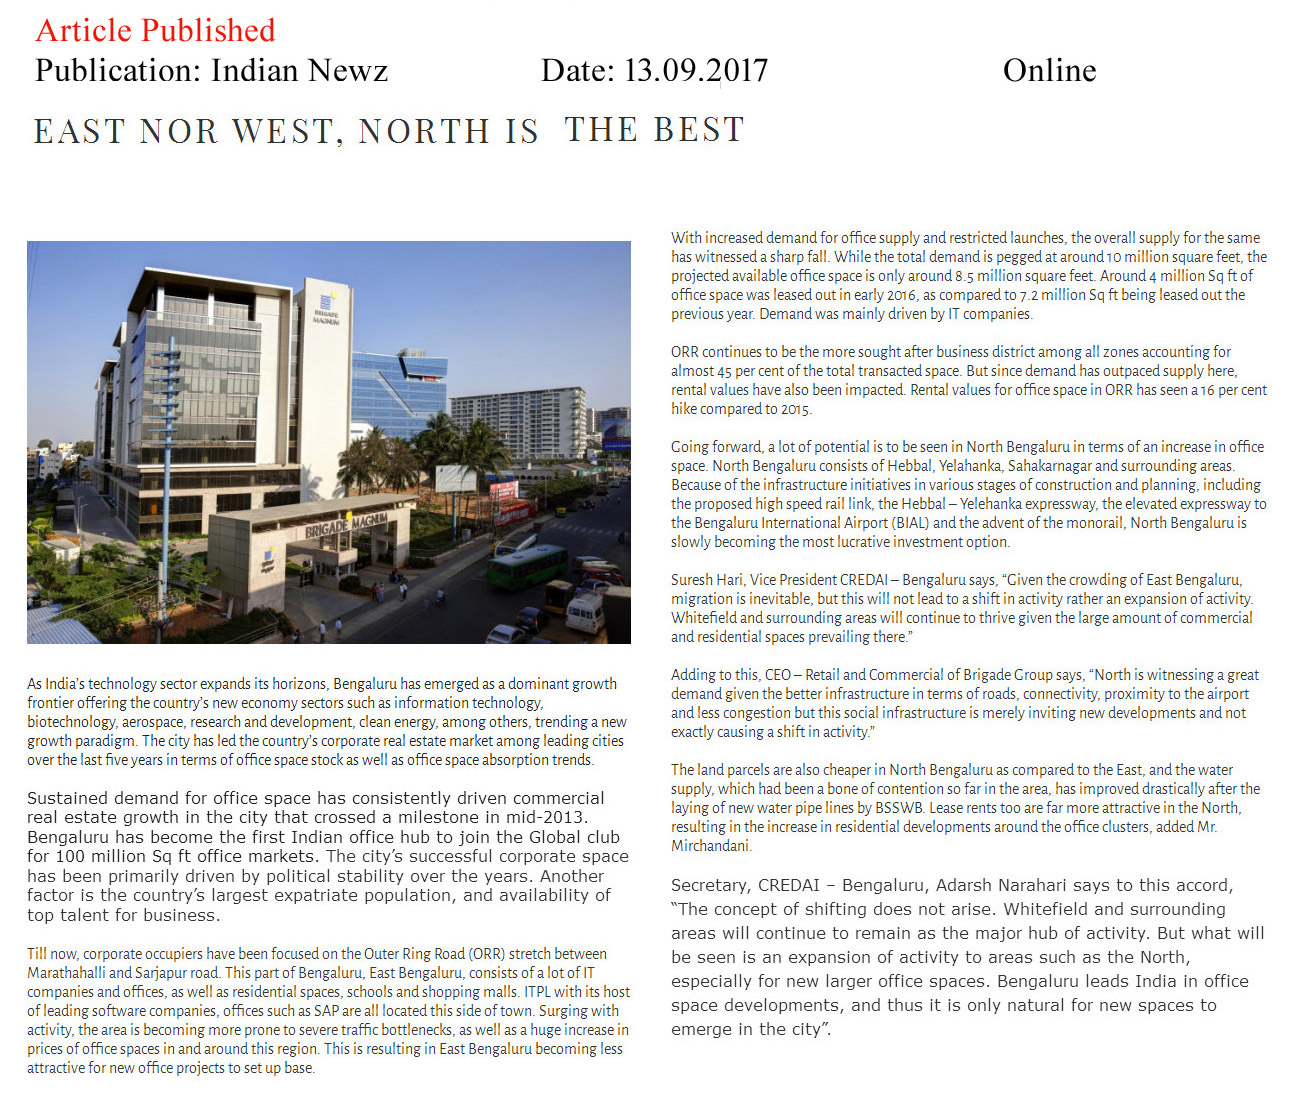 East nor West, North is the best—Indian Newz–Online